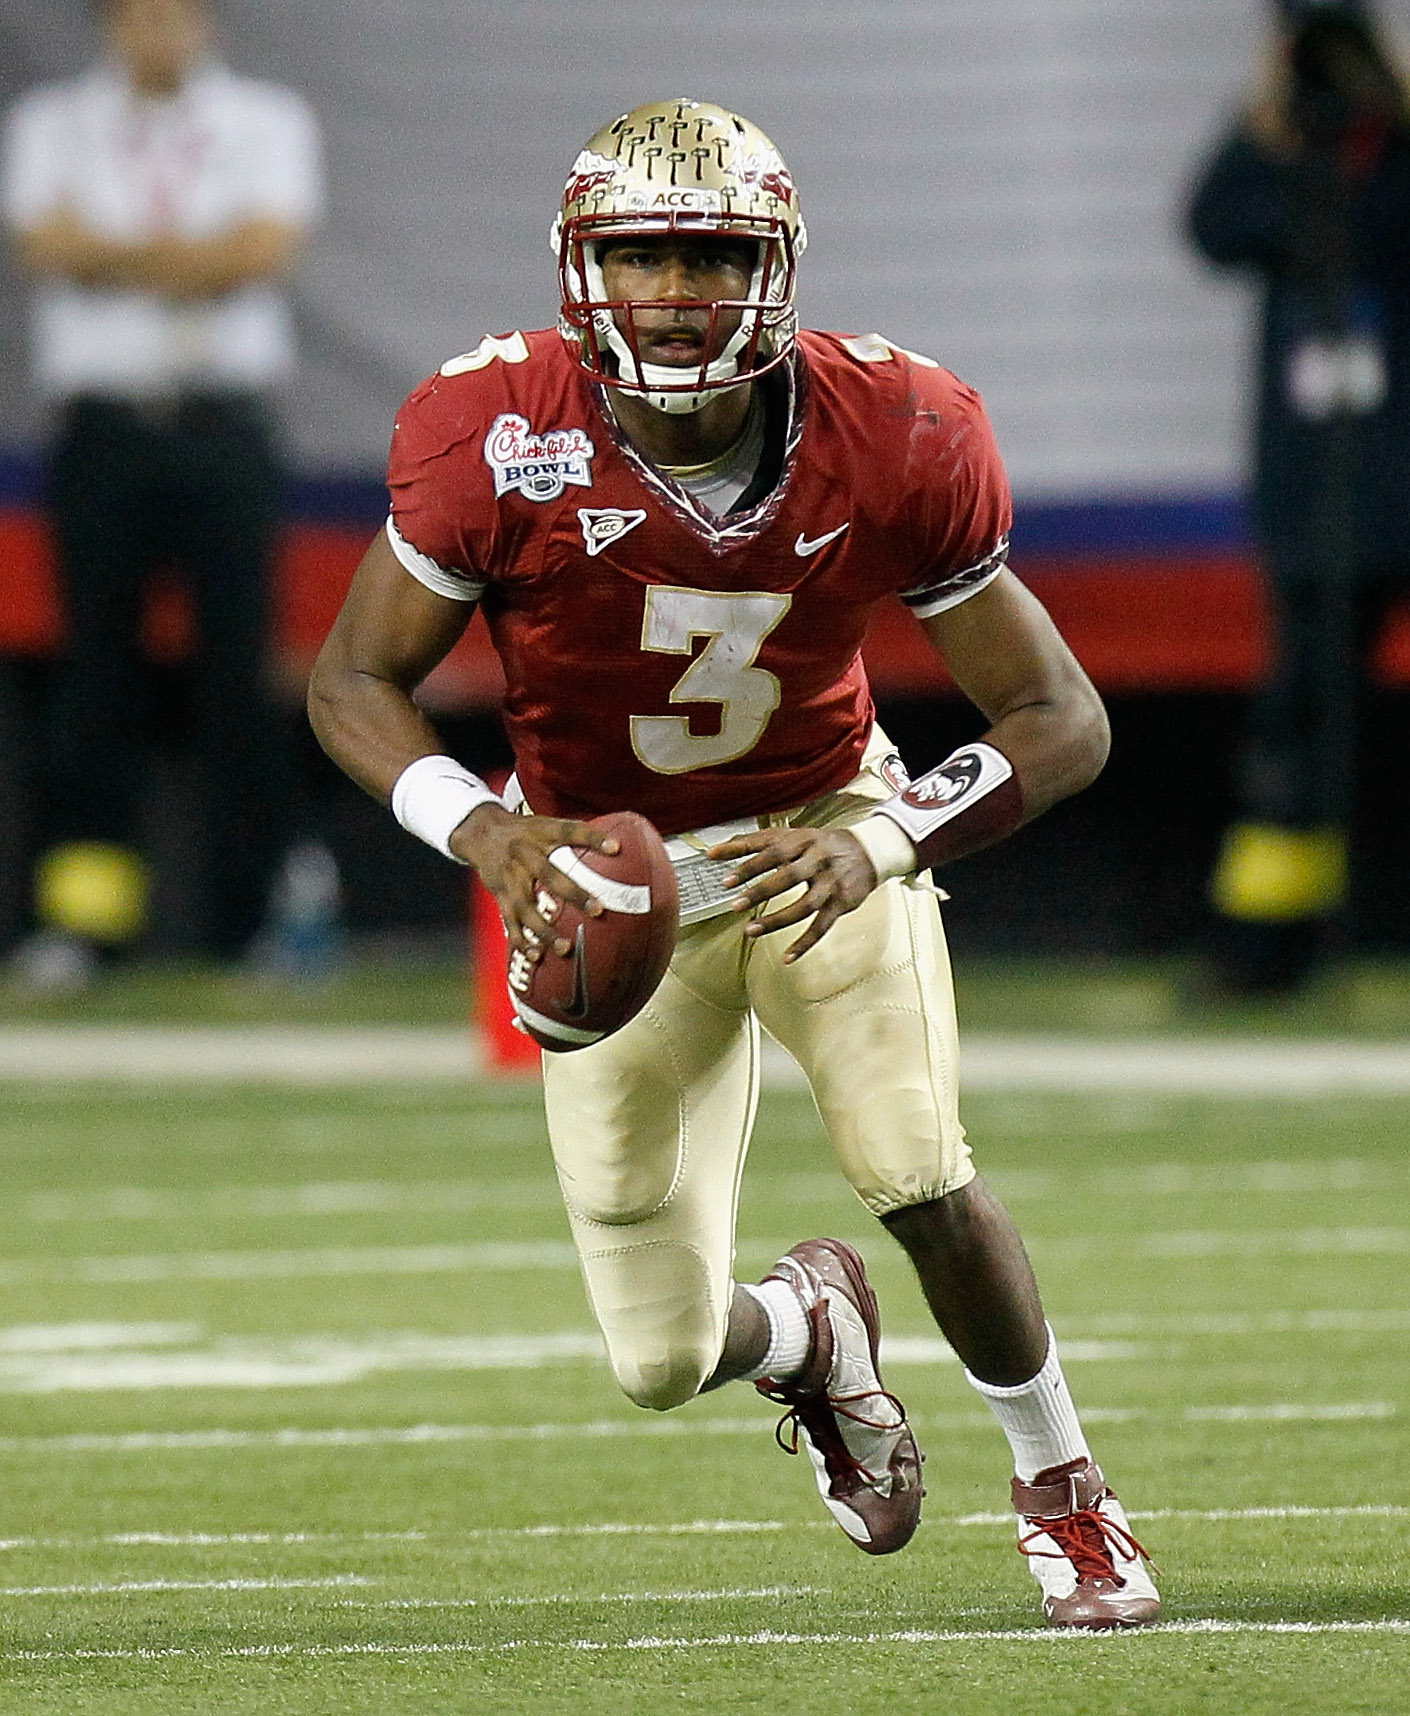 ATLANTA, GA - DECEMBER 31:  EJ Manuel #3 of the Florida State Seminoles against the South Carolina Gamecocks during the 2010 Chick-fil-A Bowl at Georgia Dome on December 31, 2010 in Atlanta, Georgia.  (Photo by Kevin C. Cox/Getty Images)